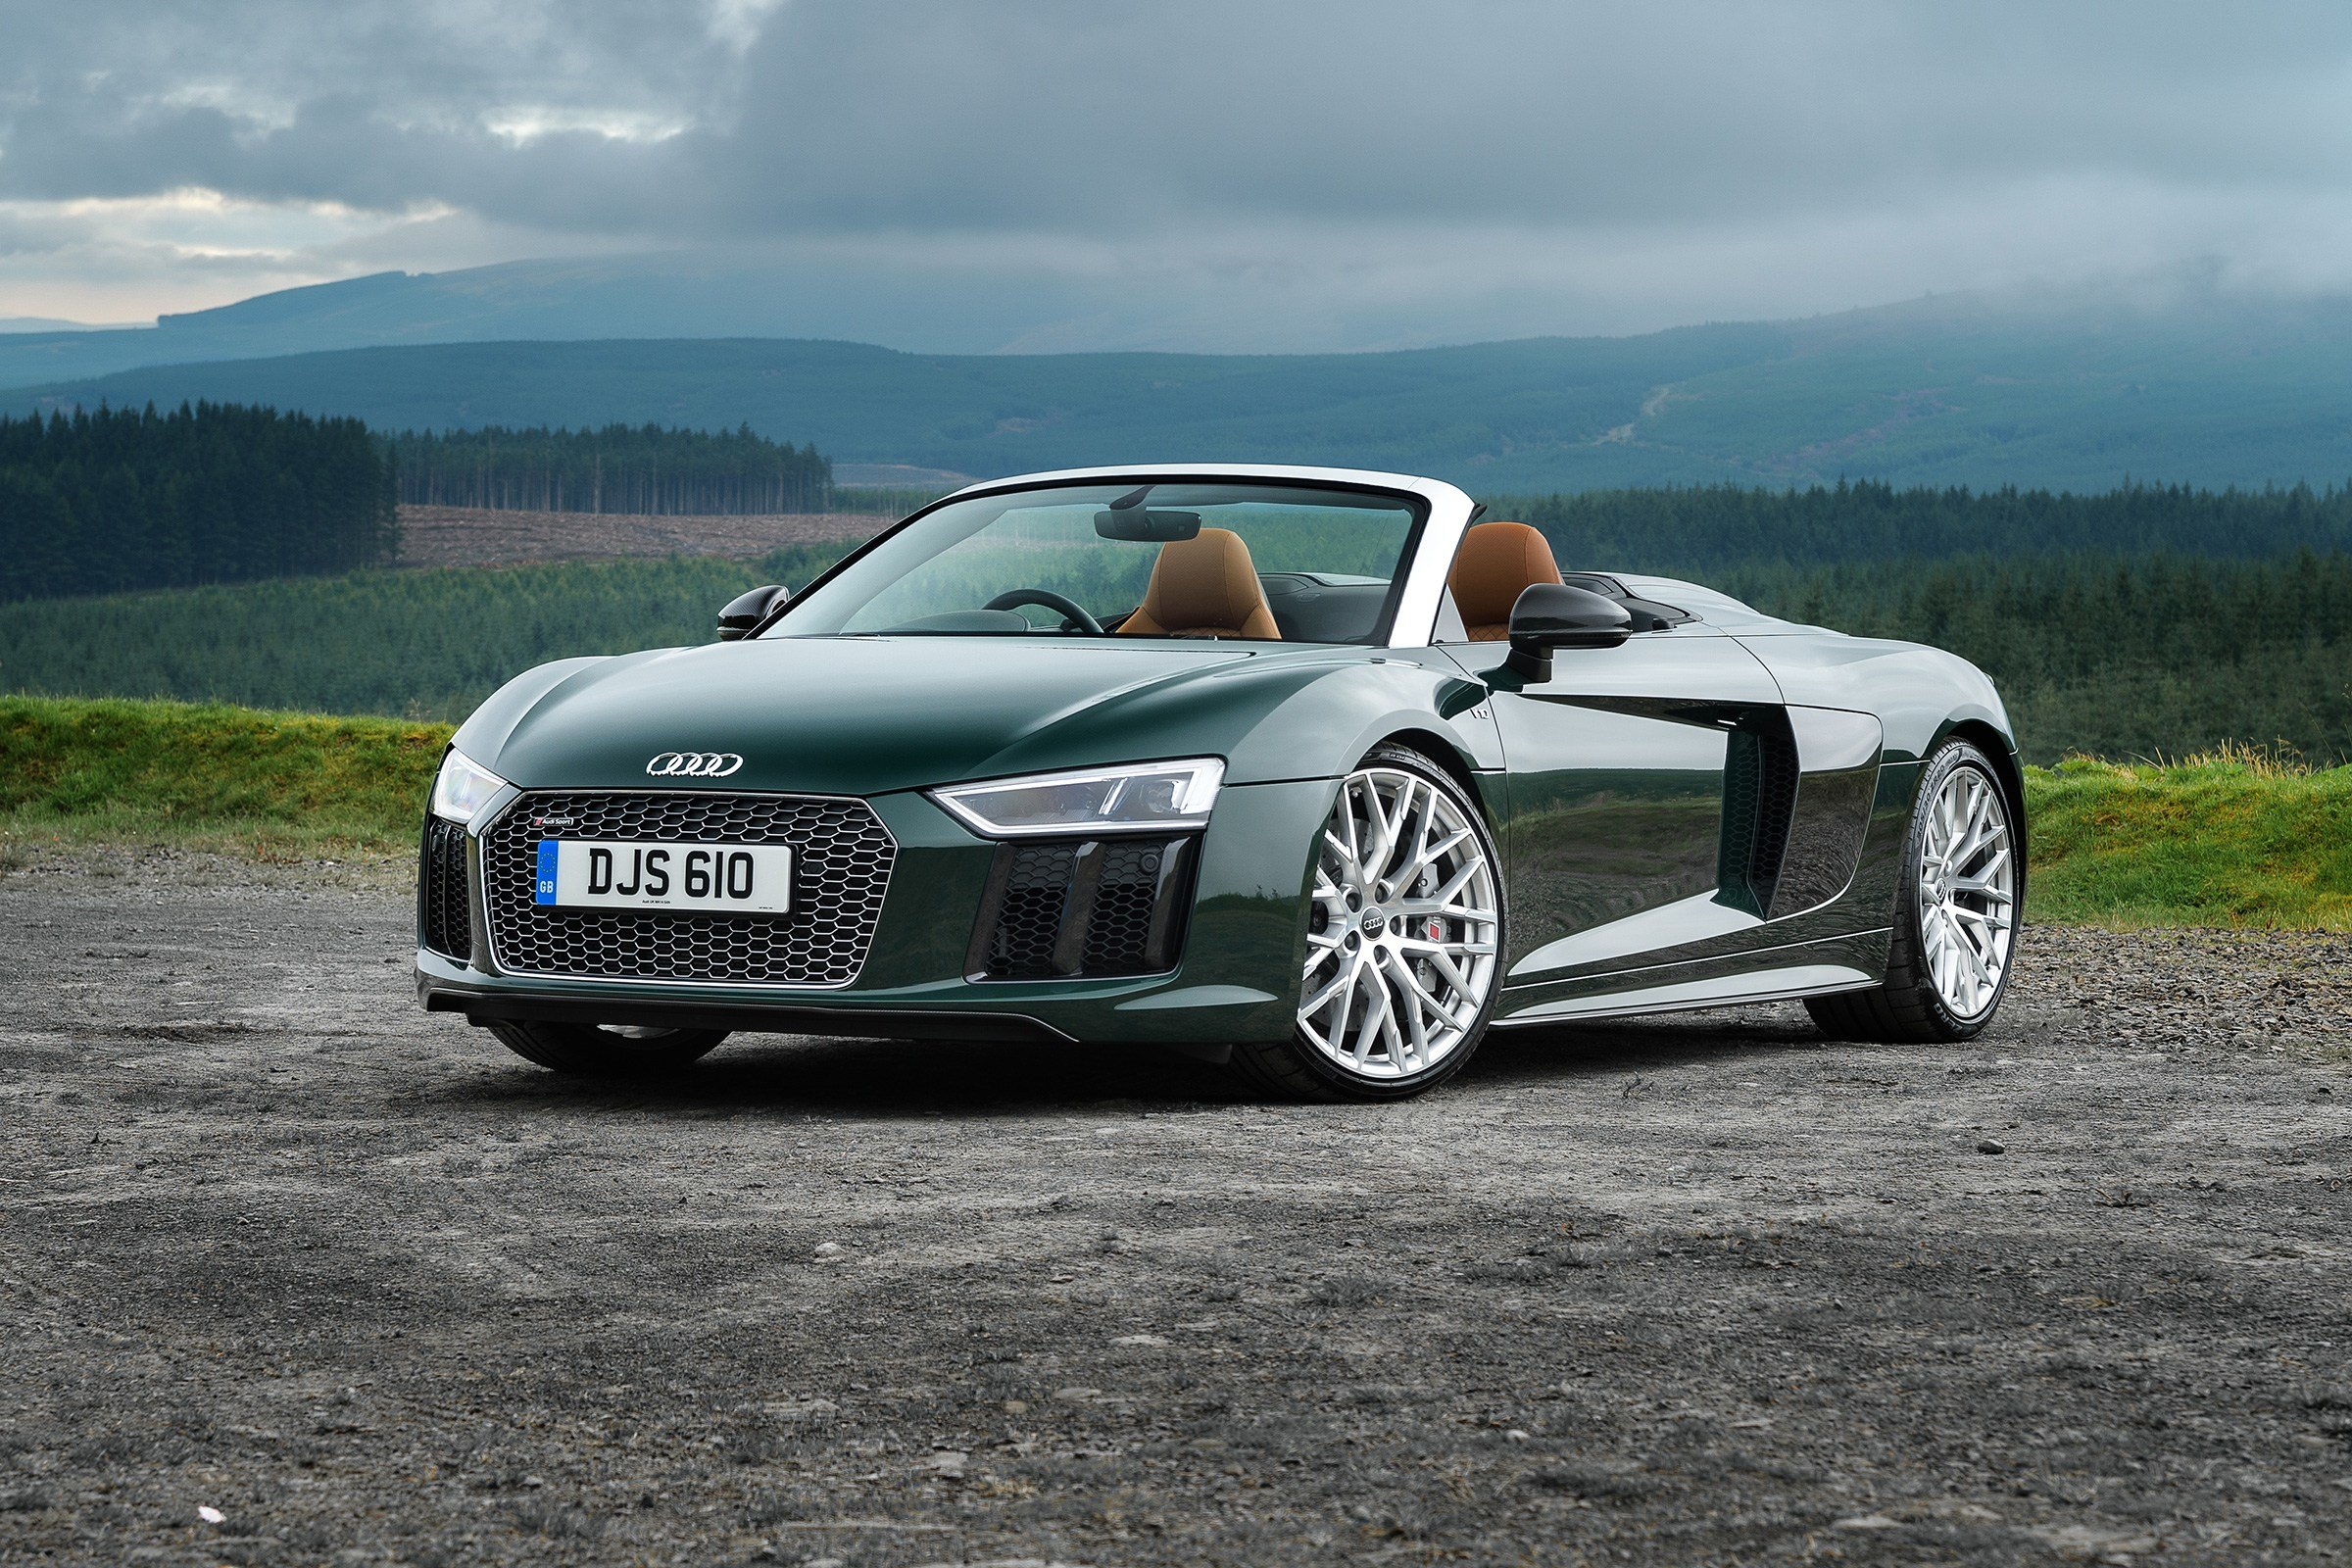 Latest Audi R8 V10 Plus Spyder – The Best Open Top Supercar Evo Free Download